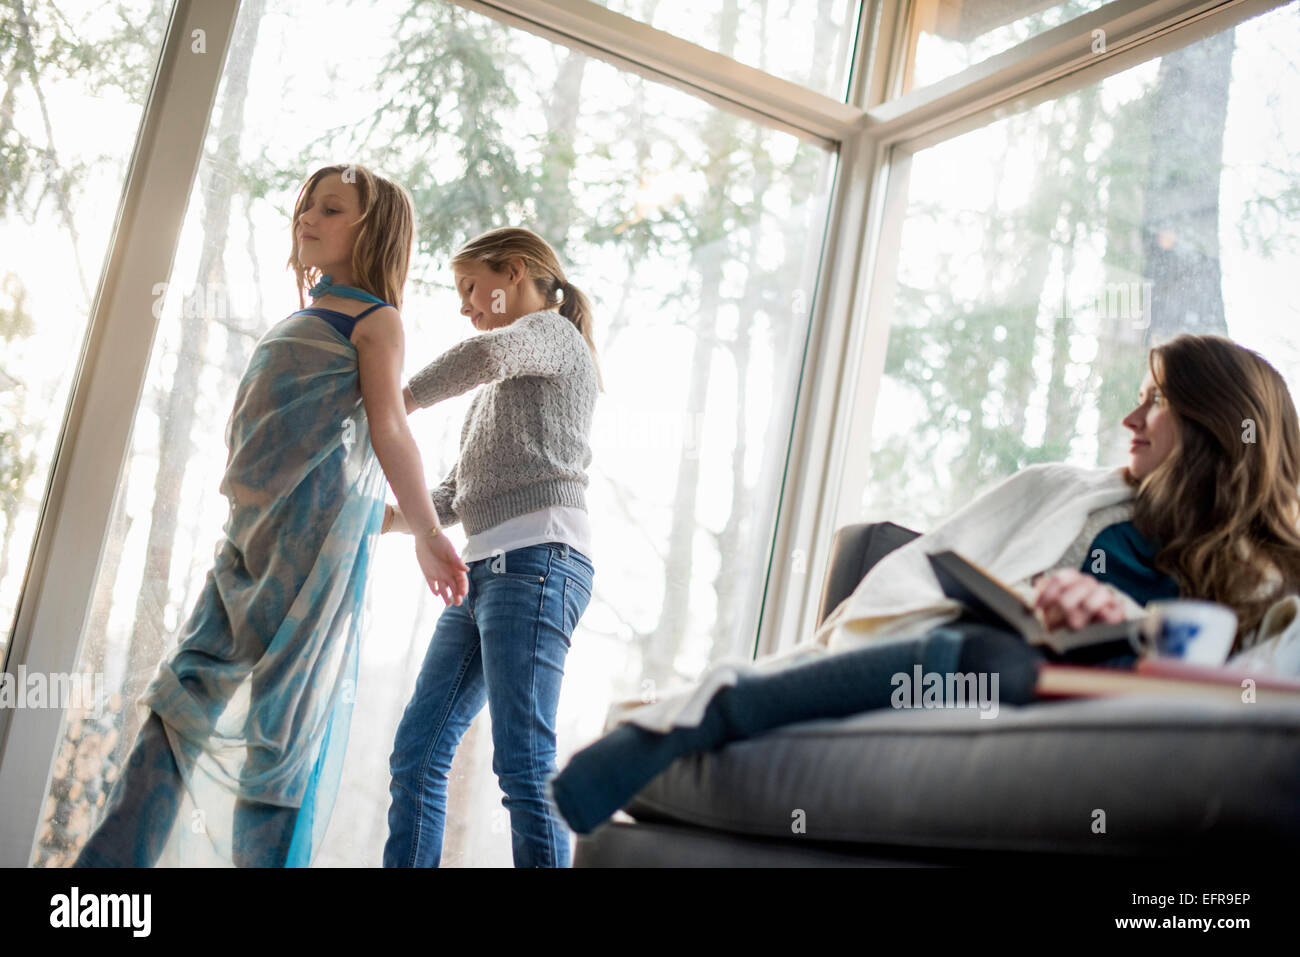 Two girls standing in a living room, dressing up, a woman sitting on a sofa, watching. - Stock Image